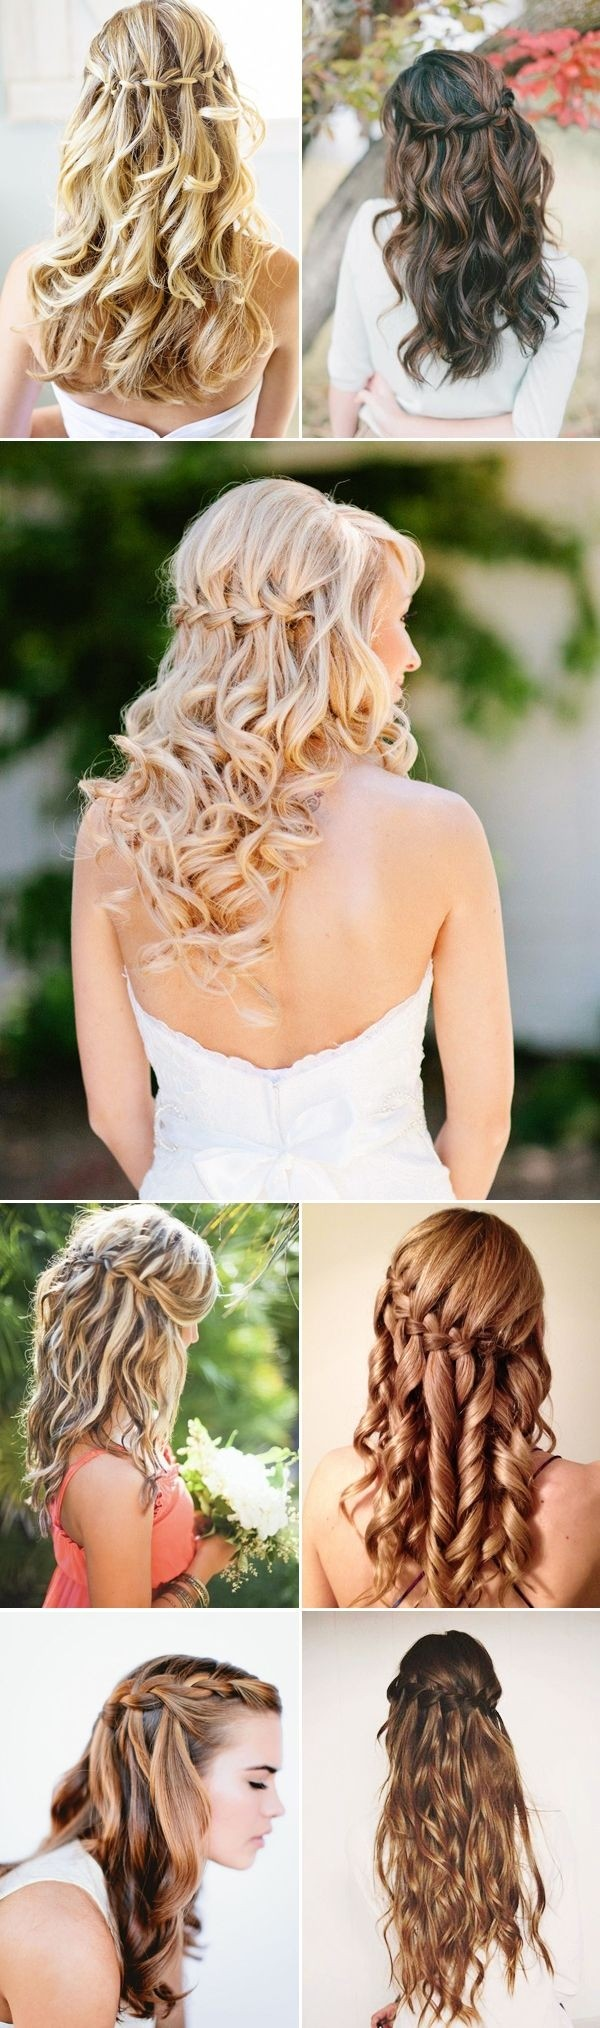 Waterfall Braids for Bridesmaids Hairstyles